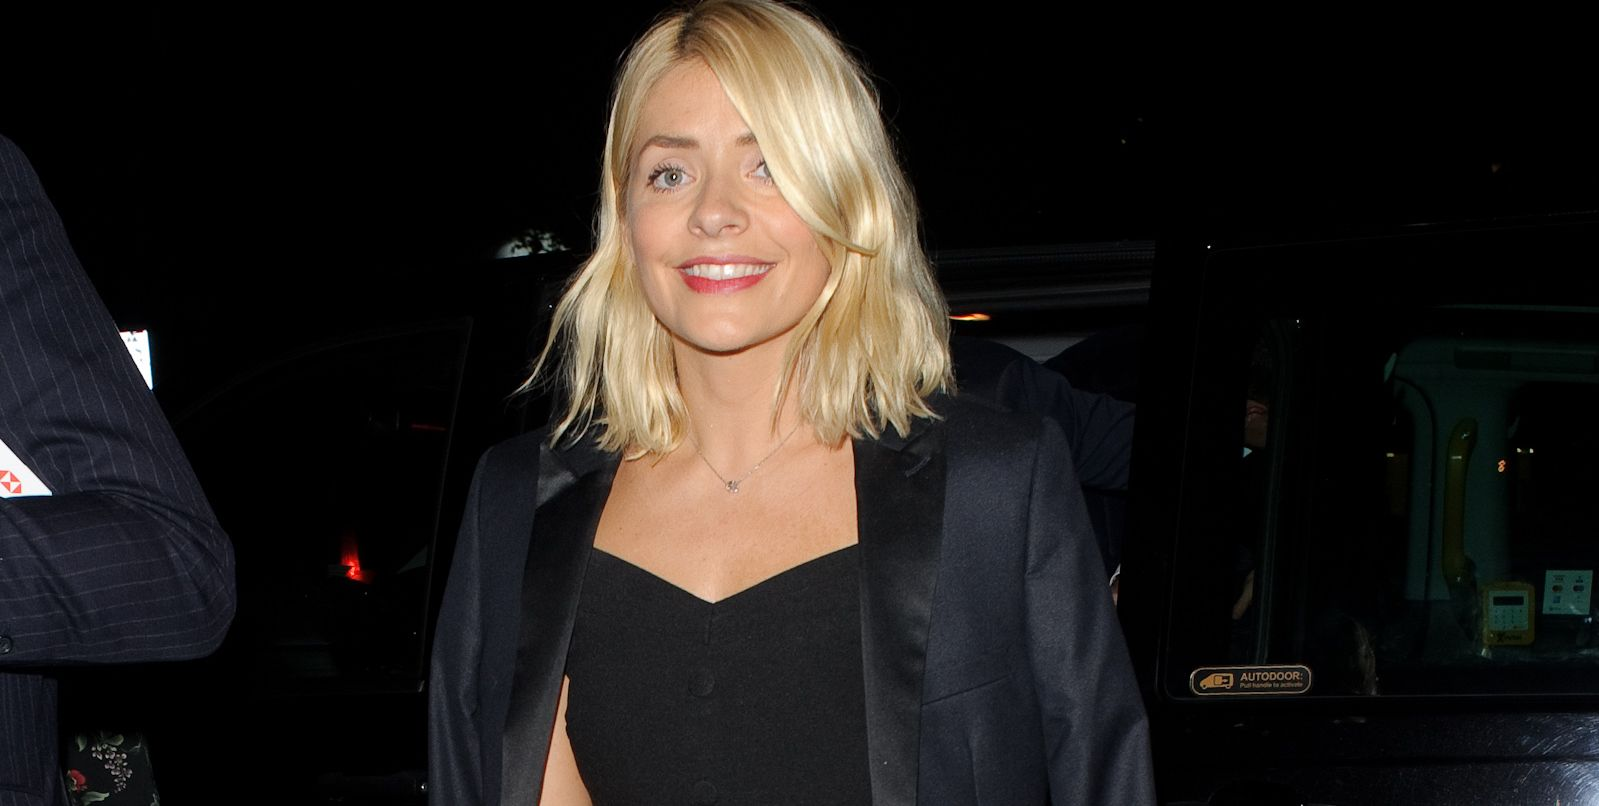 Holly Willoughby cuddles a koala in cute photo